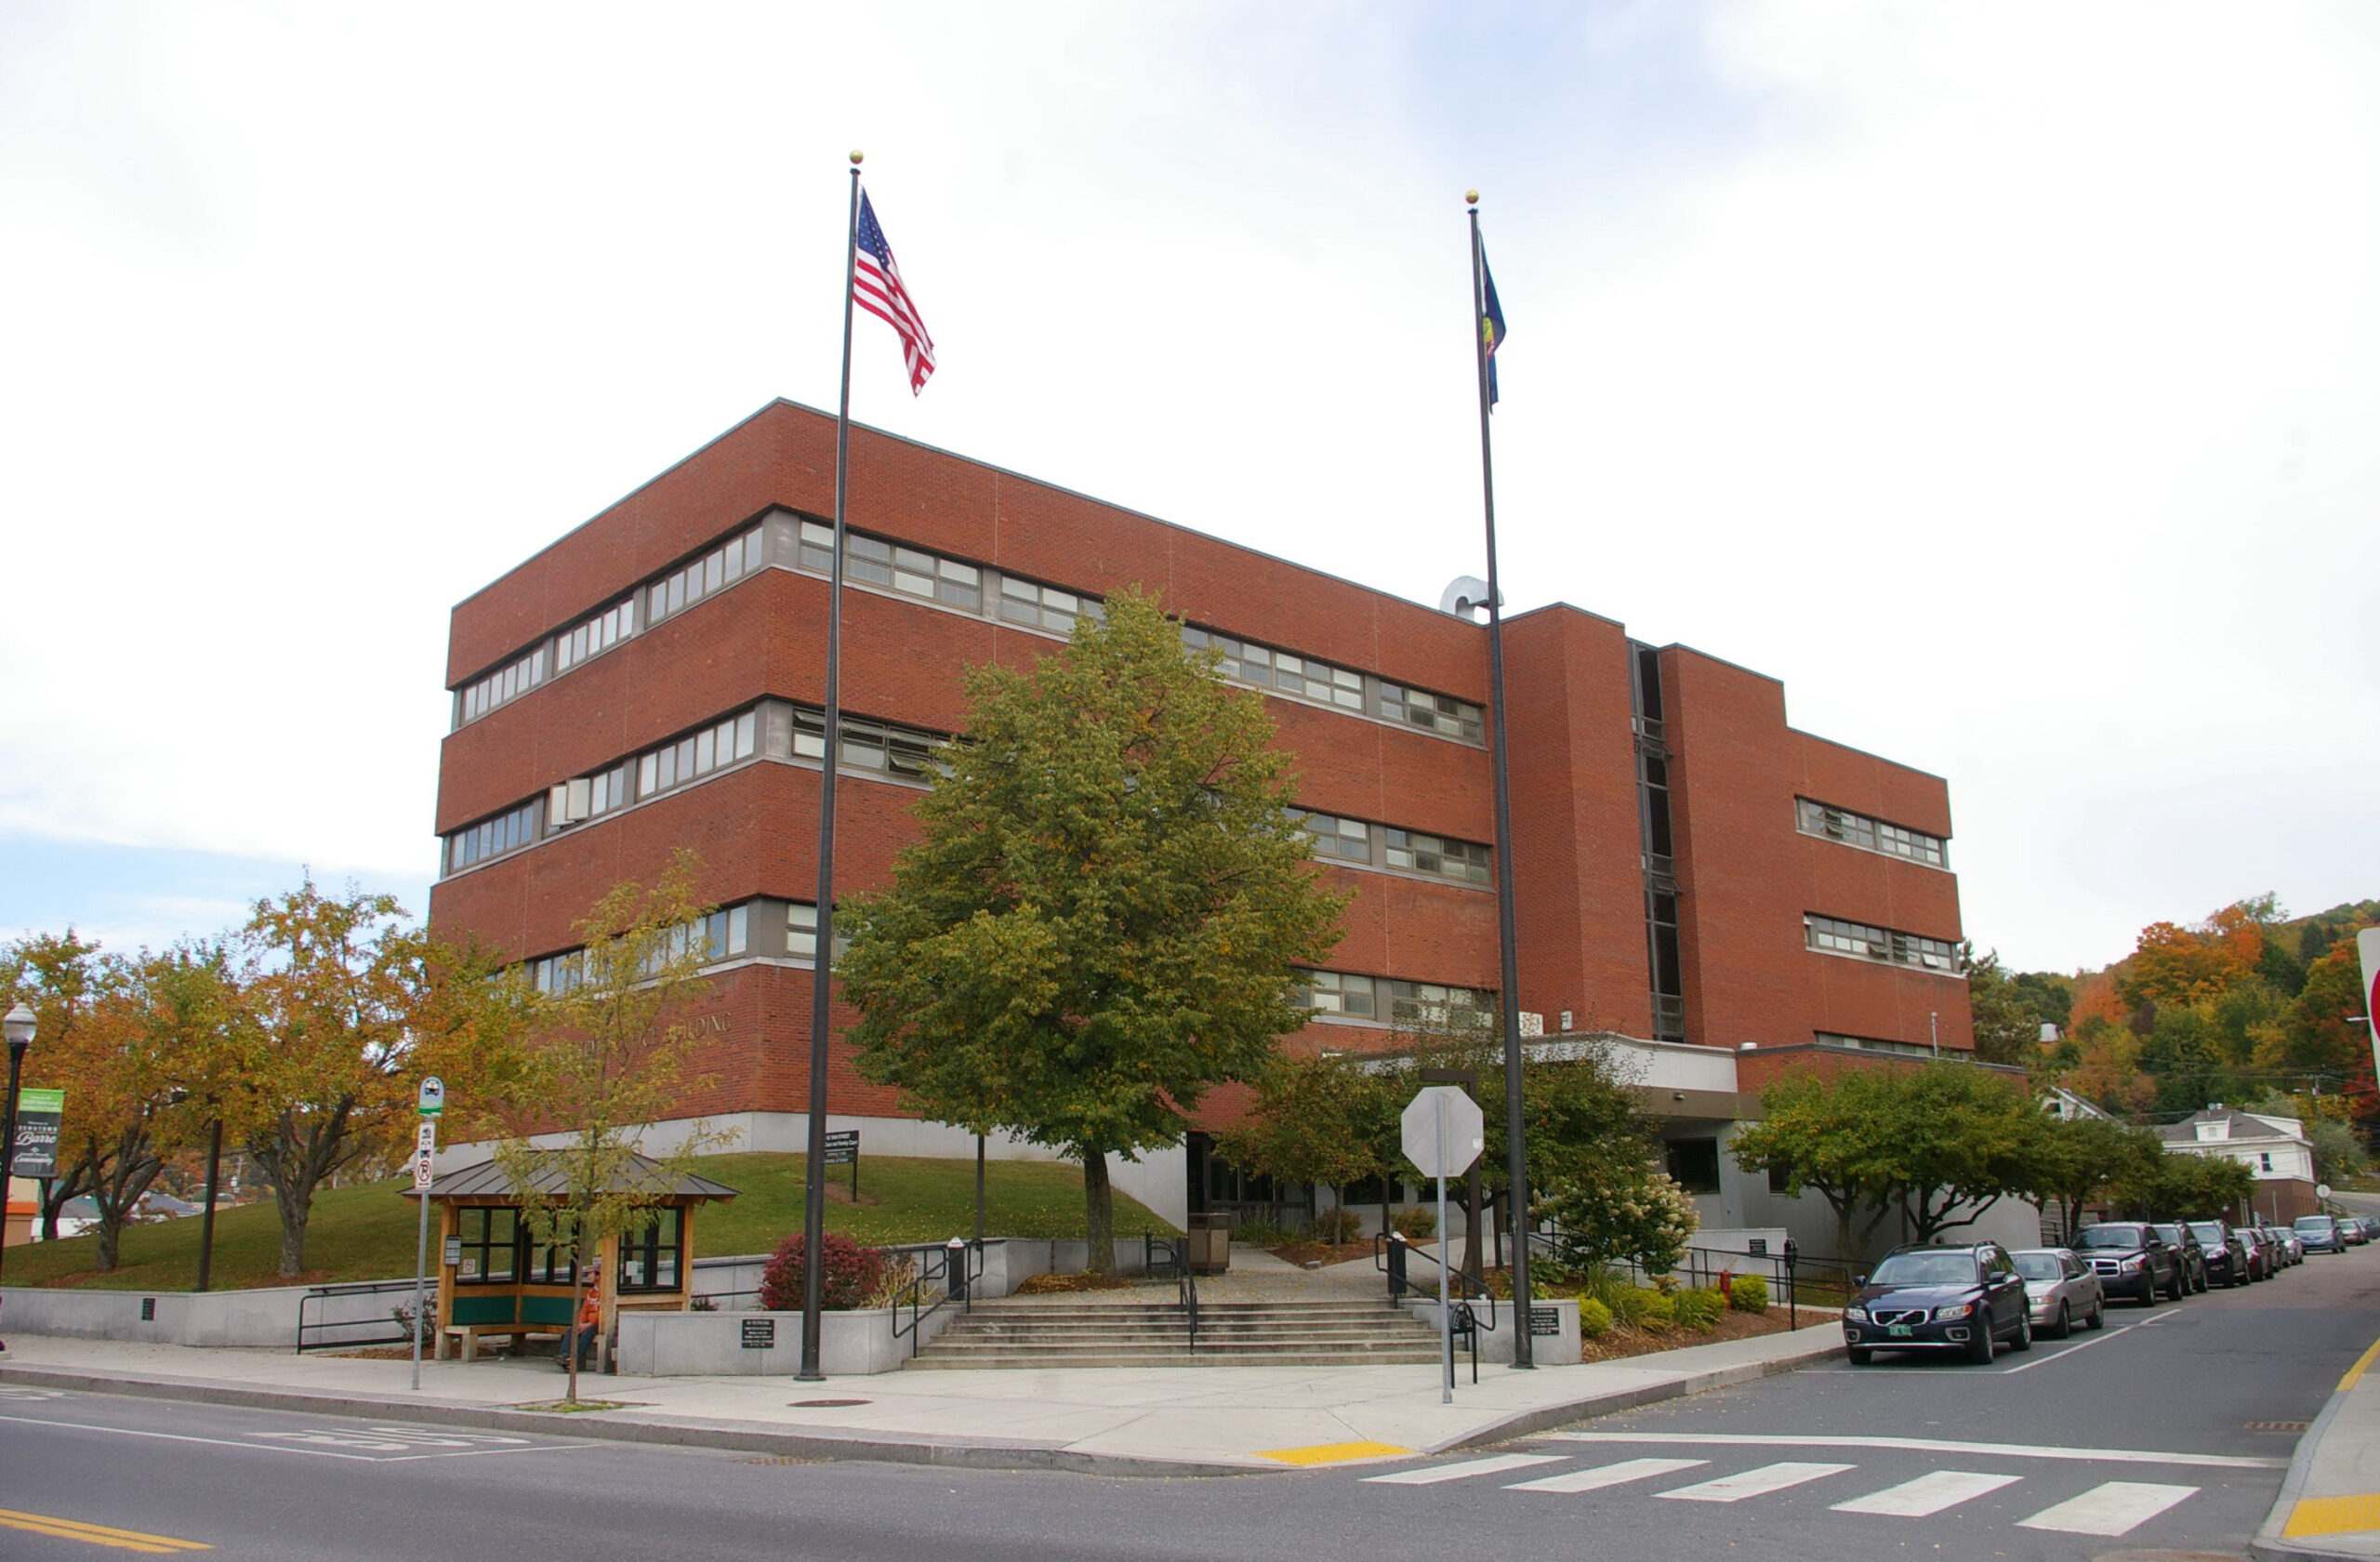 Washington County | Us Courthouses intended for Court Calendar For Washington County Minnesota